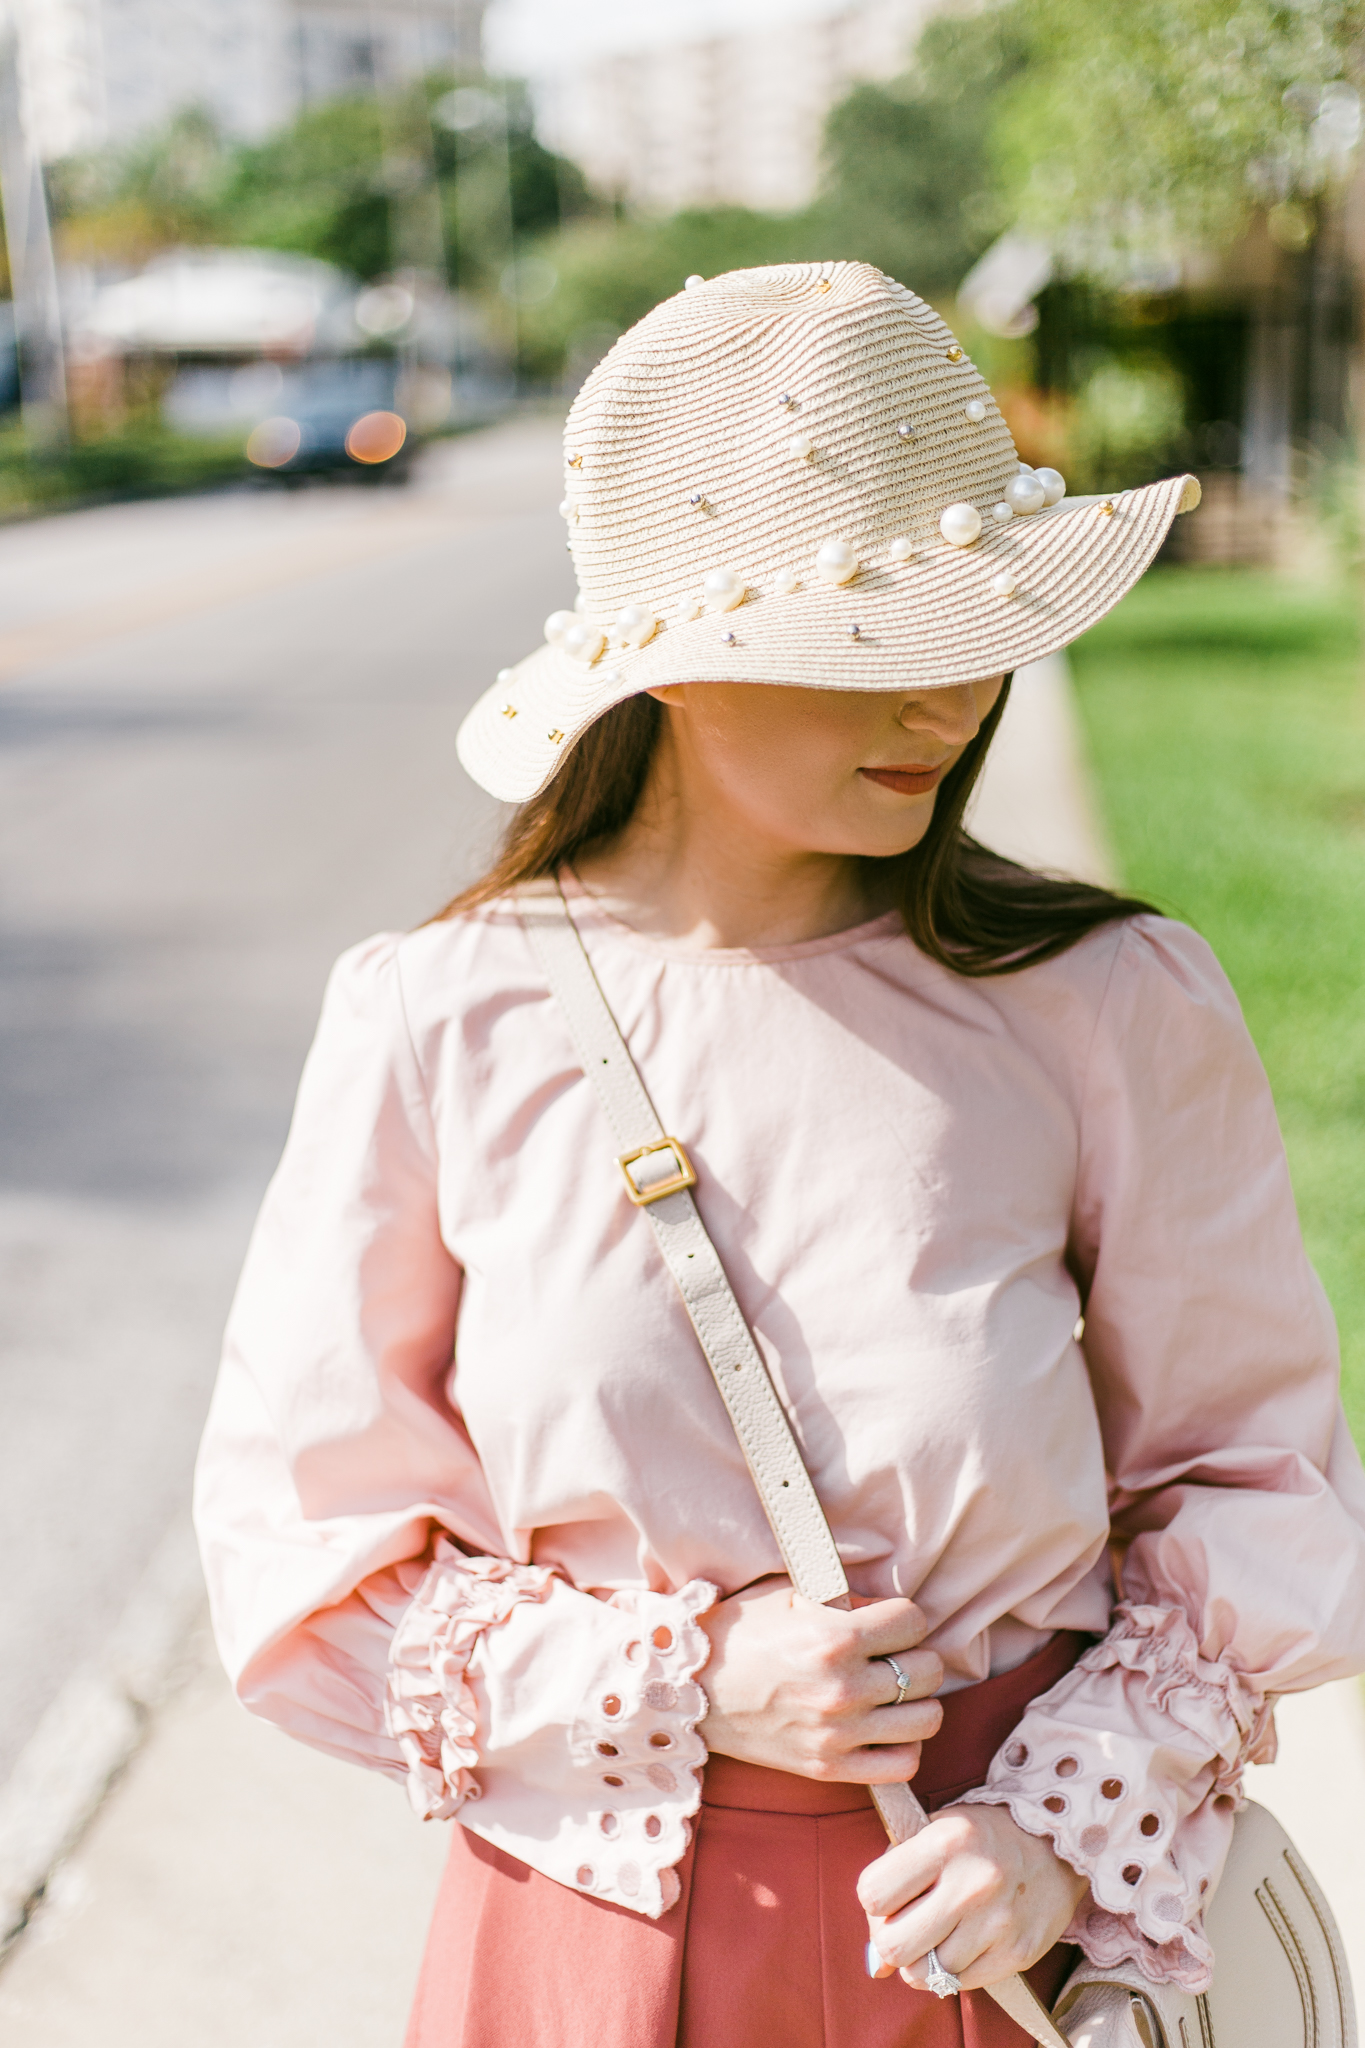 Shades of pink, pearls, and Chanel| Chanel espadrilles, pink outfit, pearl hat, Chanel, chanel pink espadrilles, pearl trend, Chloe marcie mini, pink shorts, eyelet